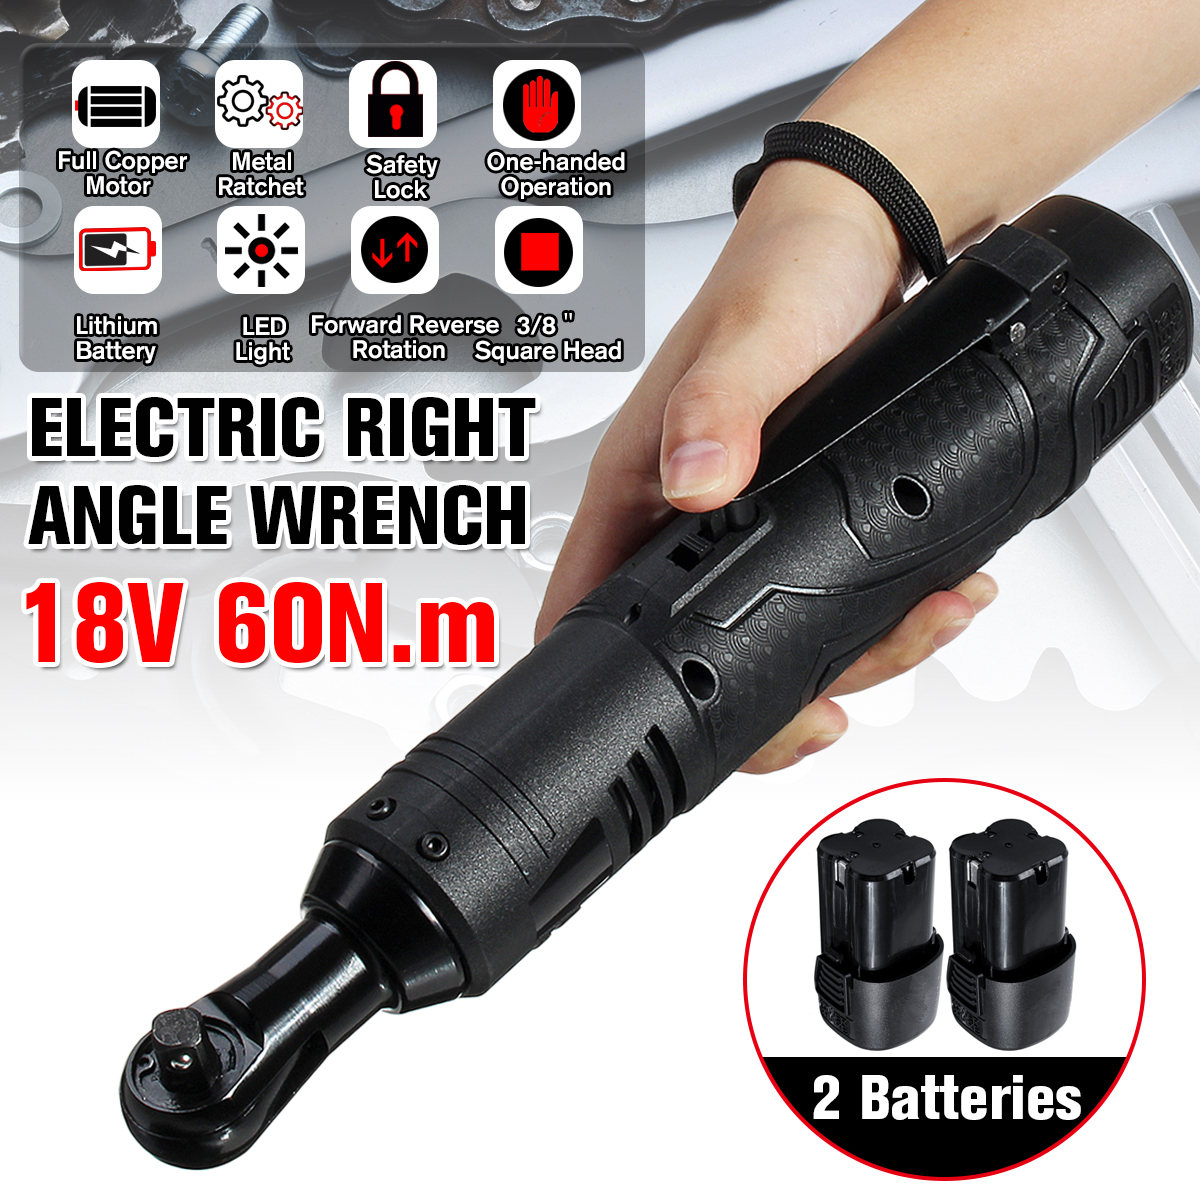 18V Electric Wrench 3/8 Cordless Ratchet With Battery LED Light Kit Right Angle Rechargeable Scaffolding 60N.m Torque Ratchet